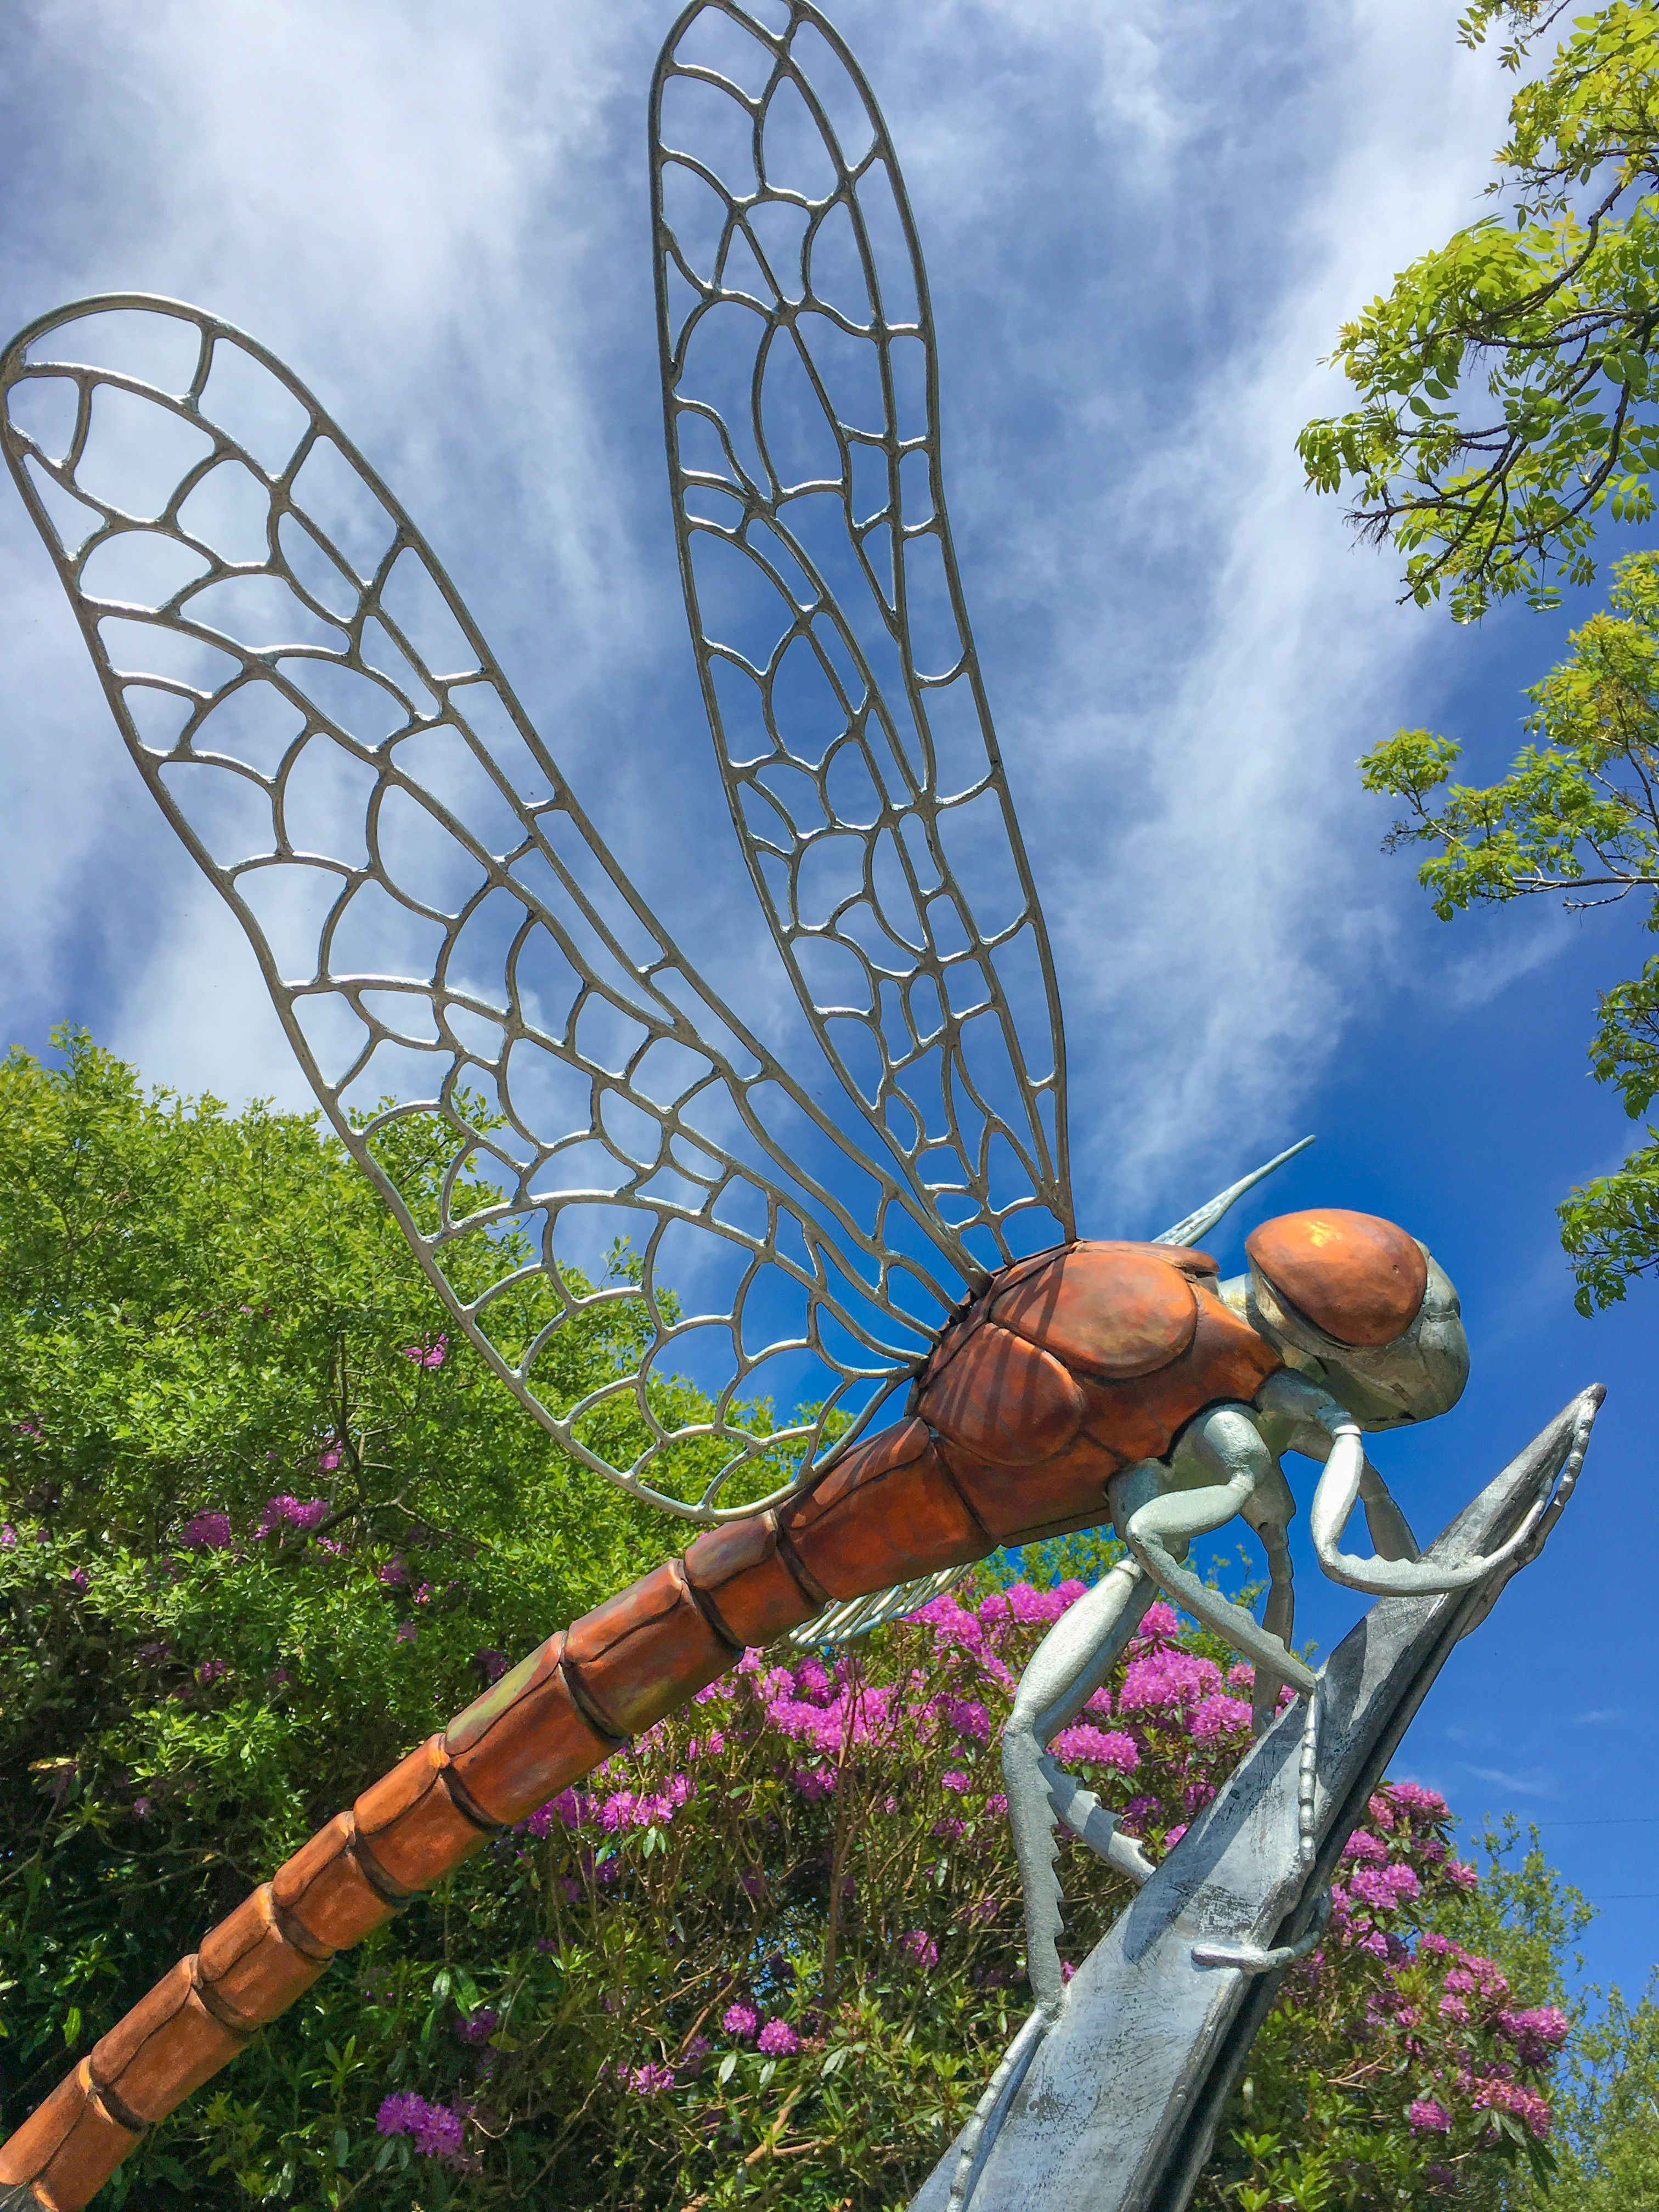 Giant Dragonfly sculpture made of copper and galvanized steel with a 1.5m long…